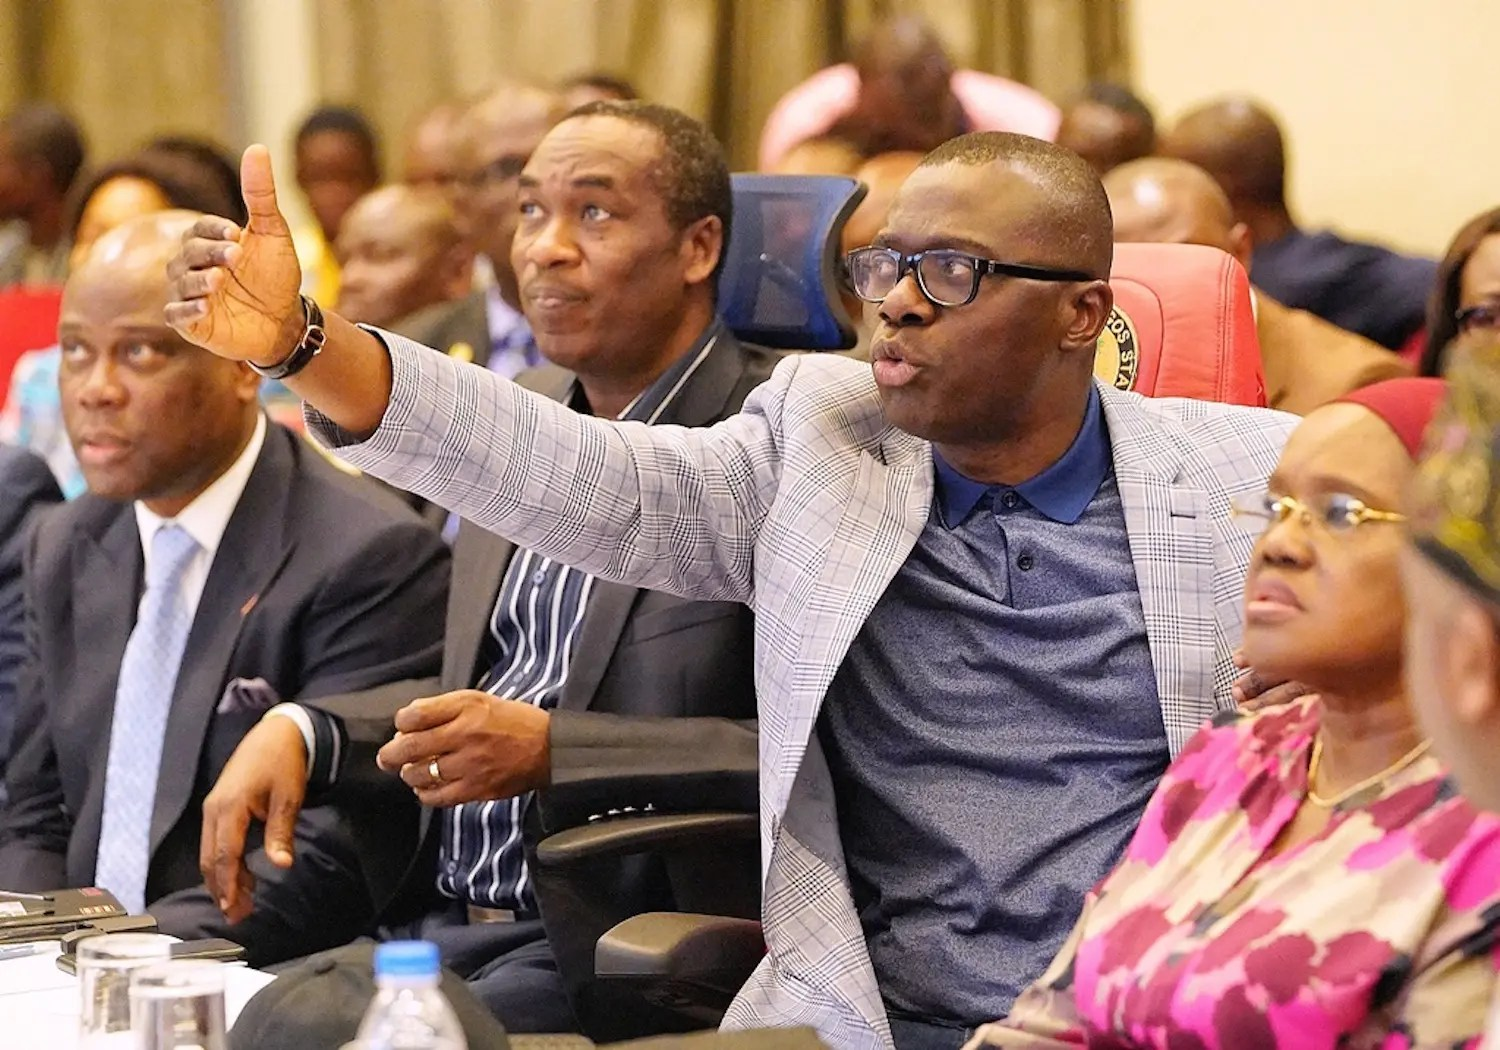 We'll use professionals in Diaspora to build Lagos – Sanwo-Olu - Vanguard